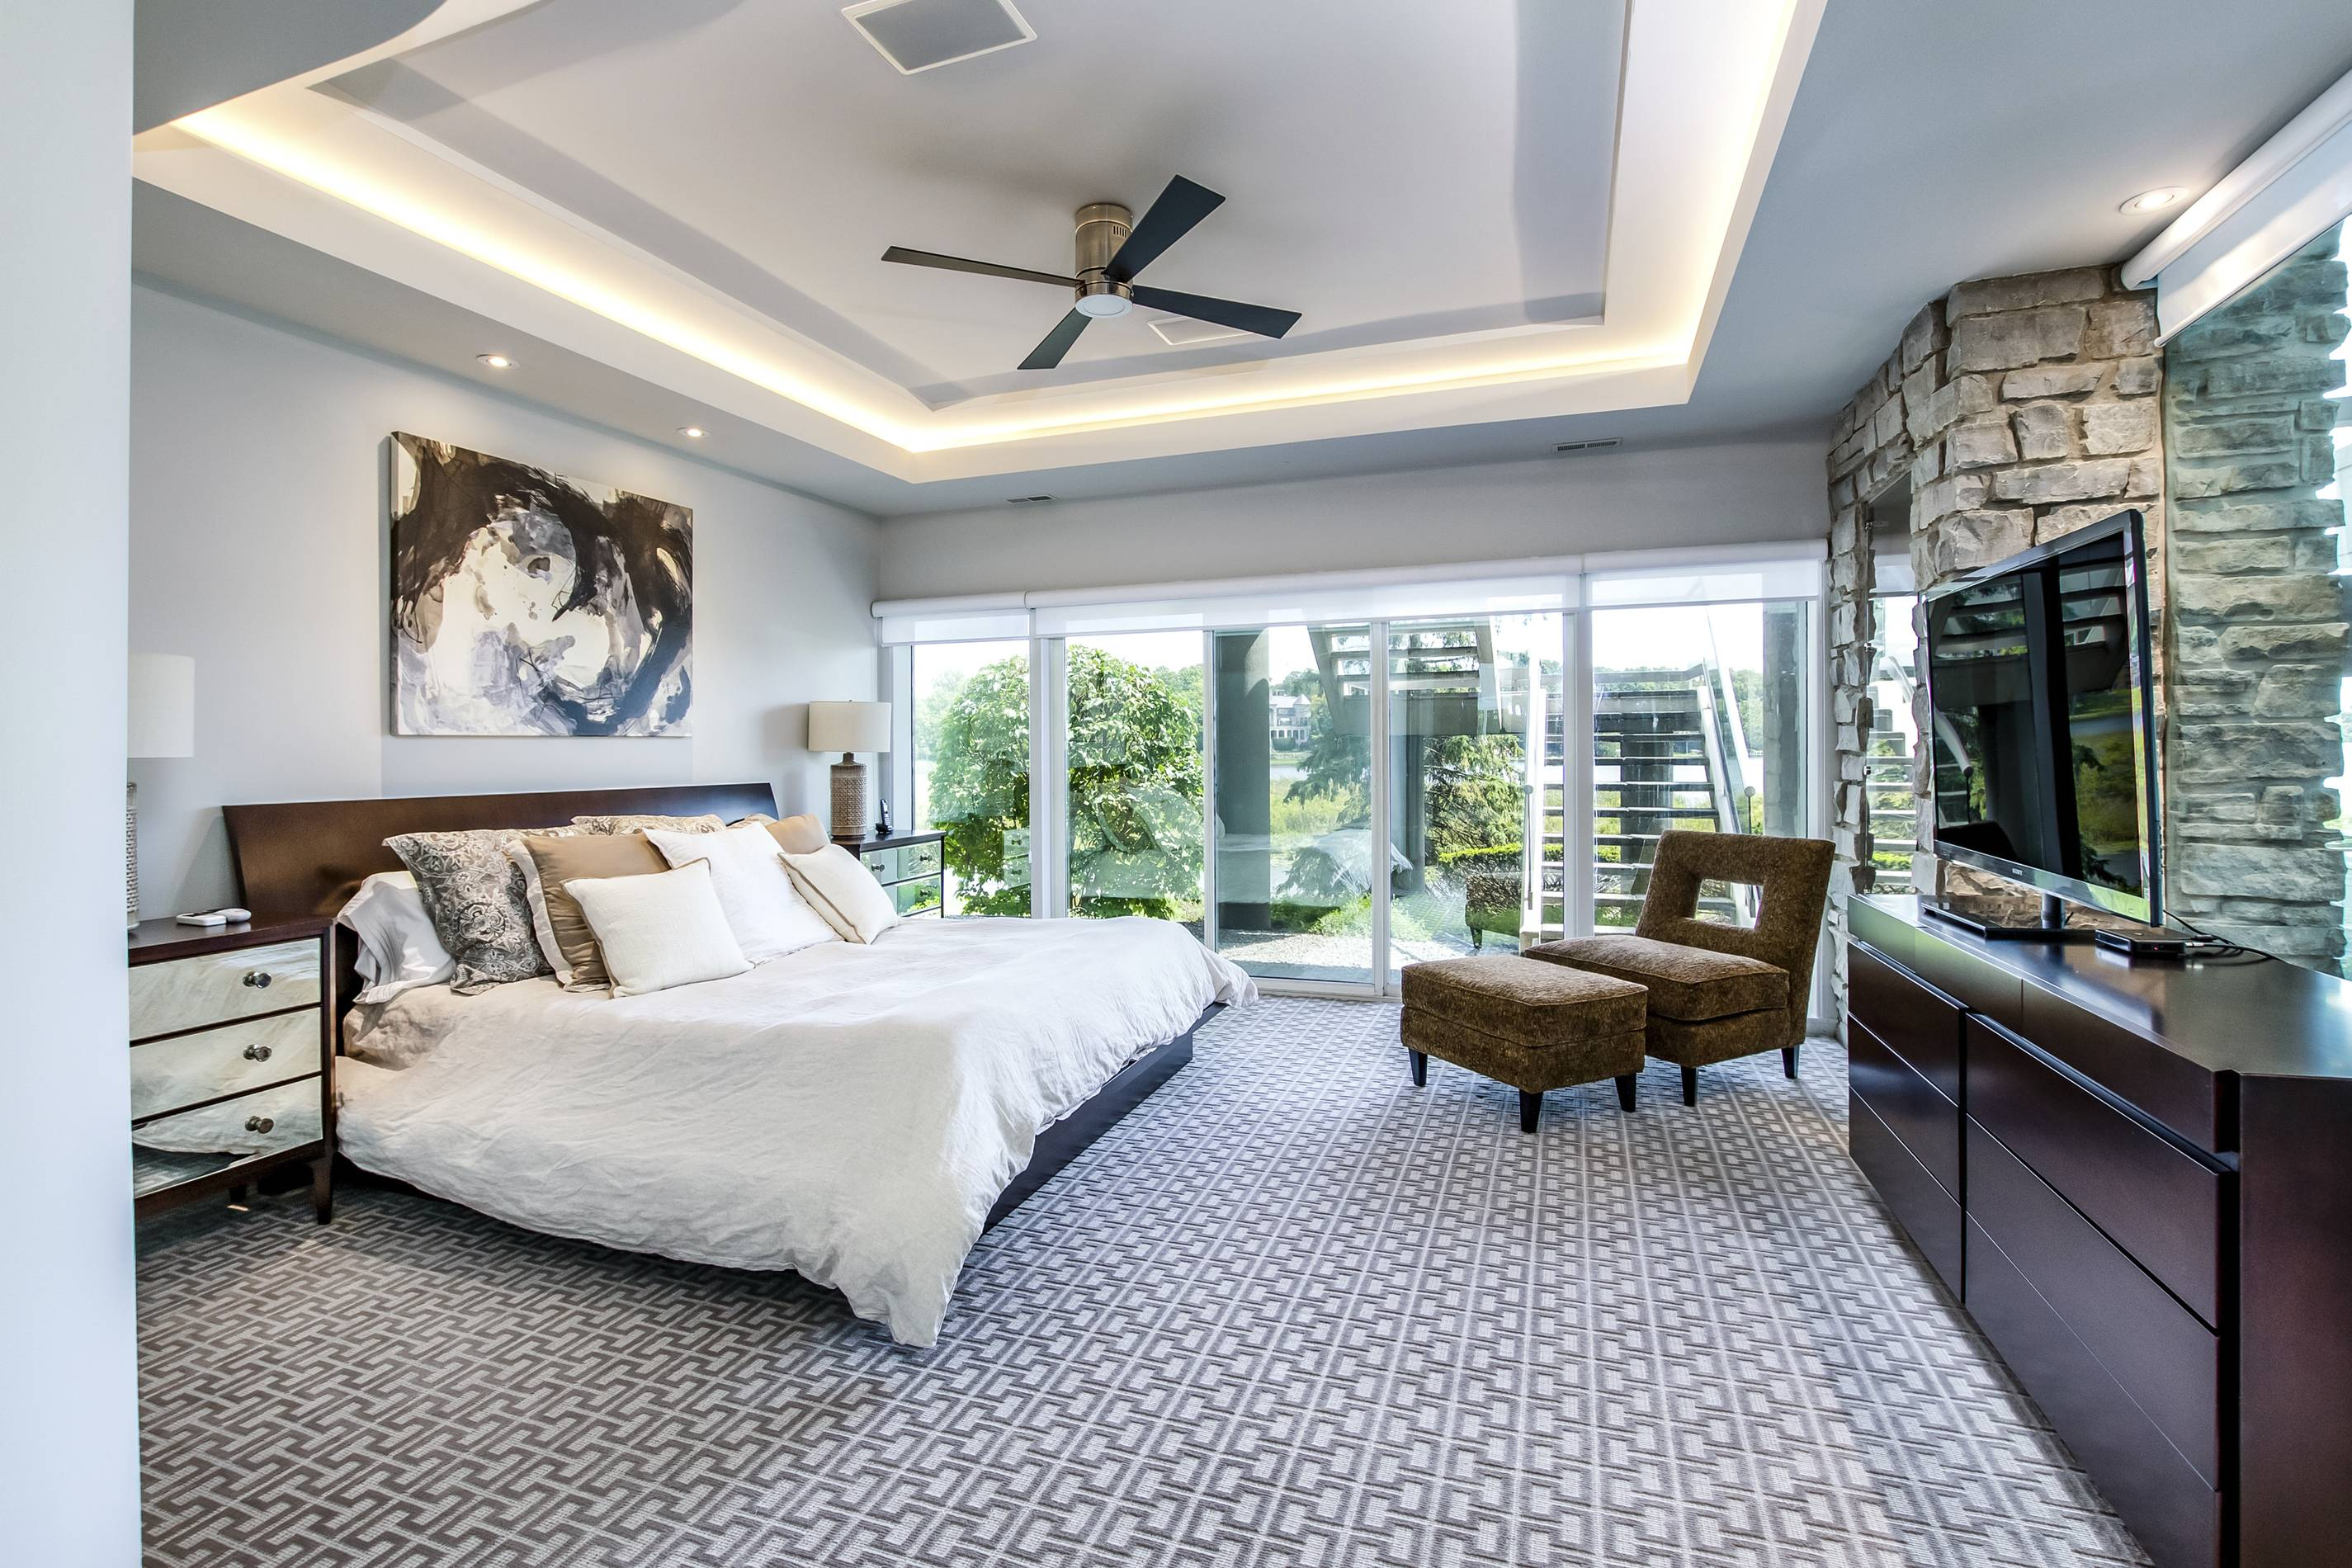 Matthew Stafford's Michigan Mansion, bedroom